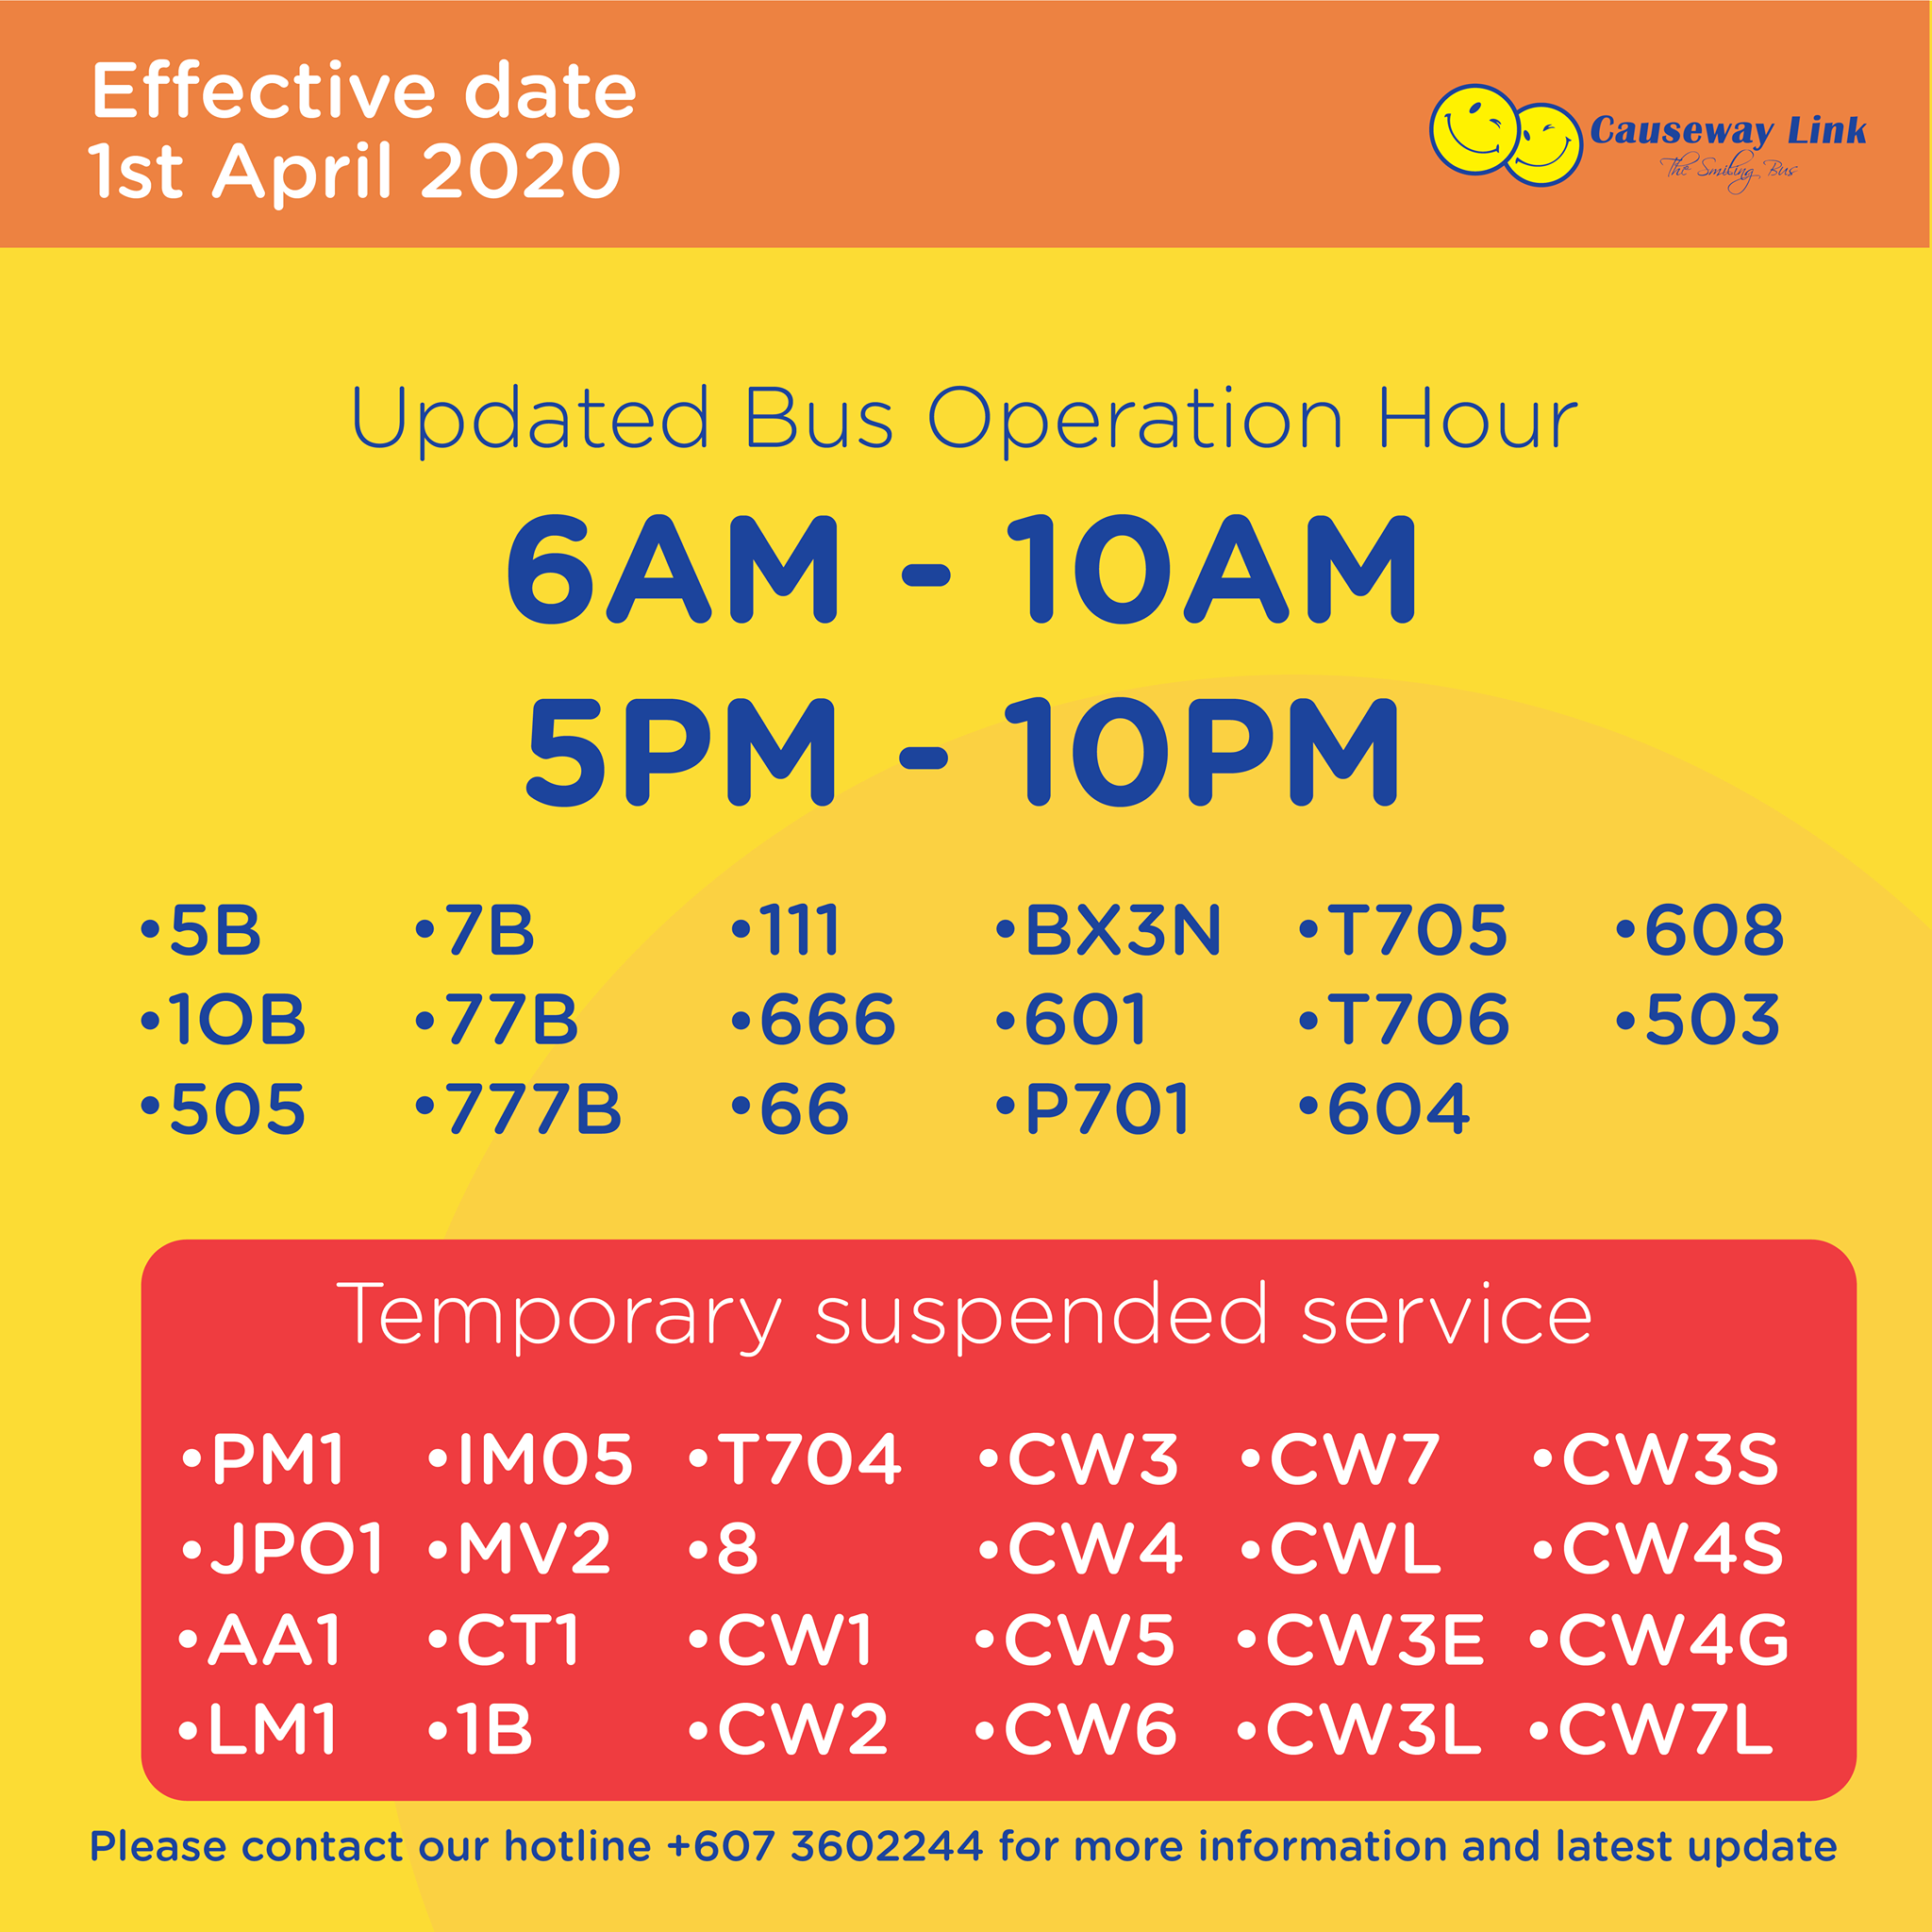 Causeway Link bus operating status from 1 April 2020